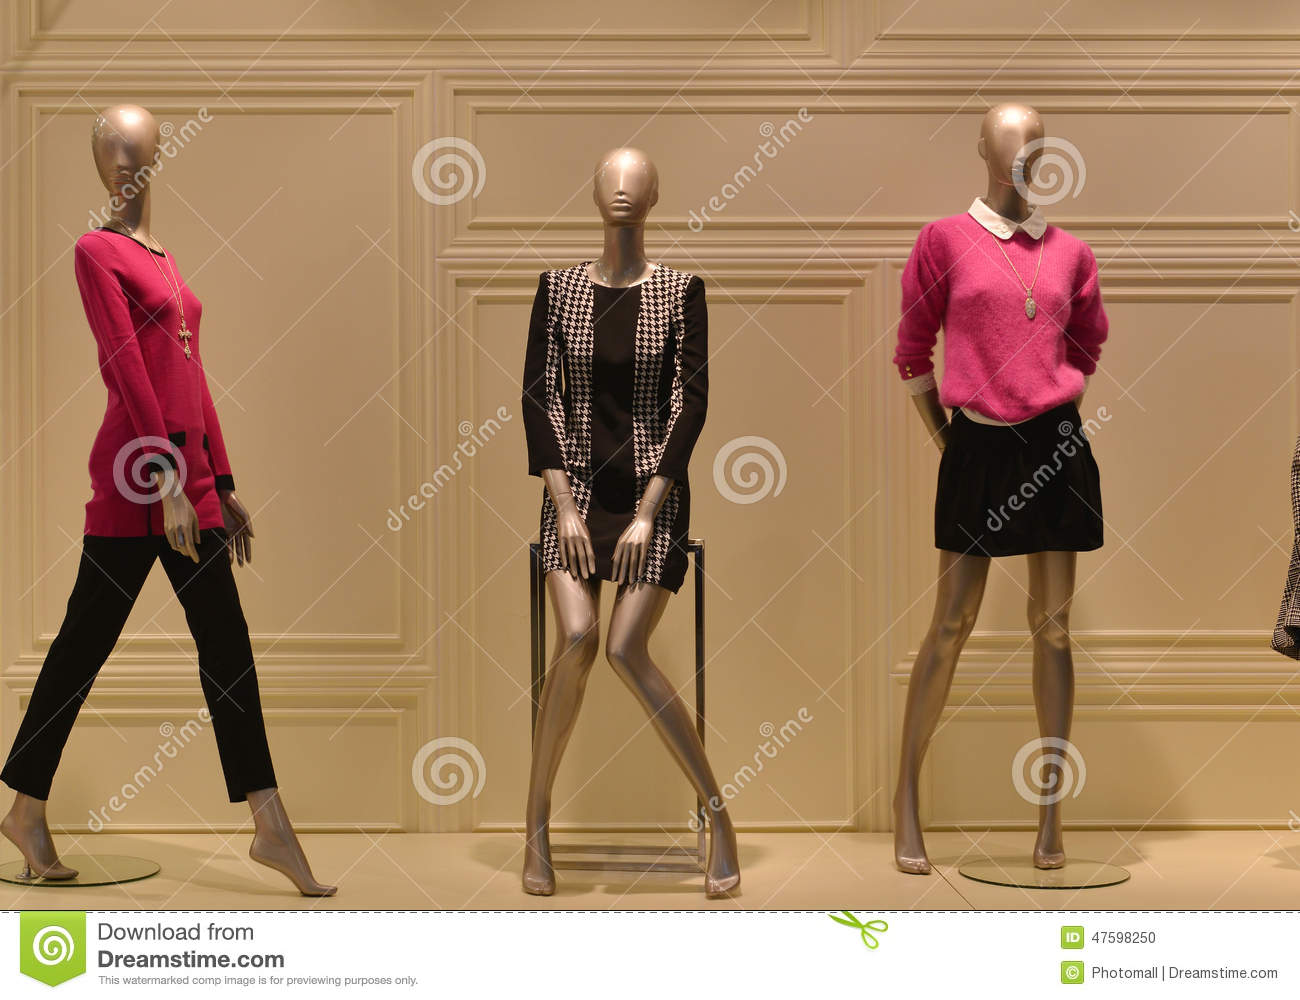 Female Mannequins In A Fashion Clothing Shop Window Stock